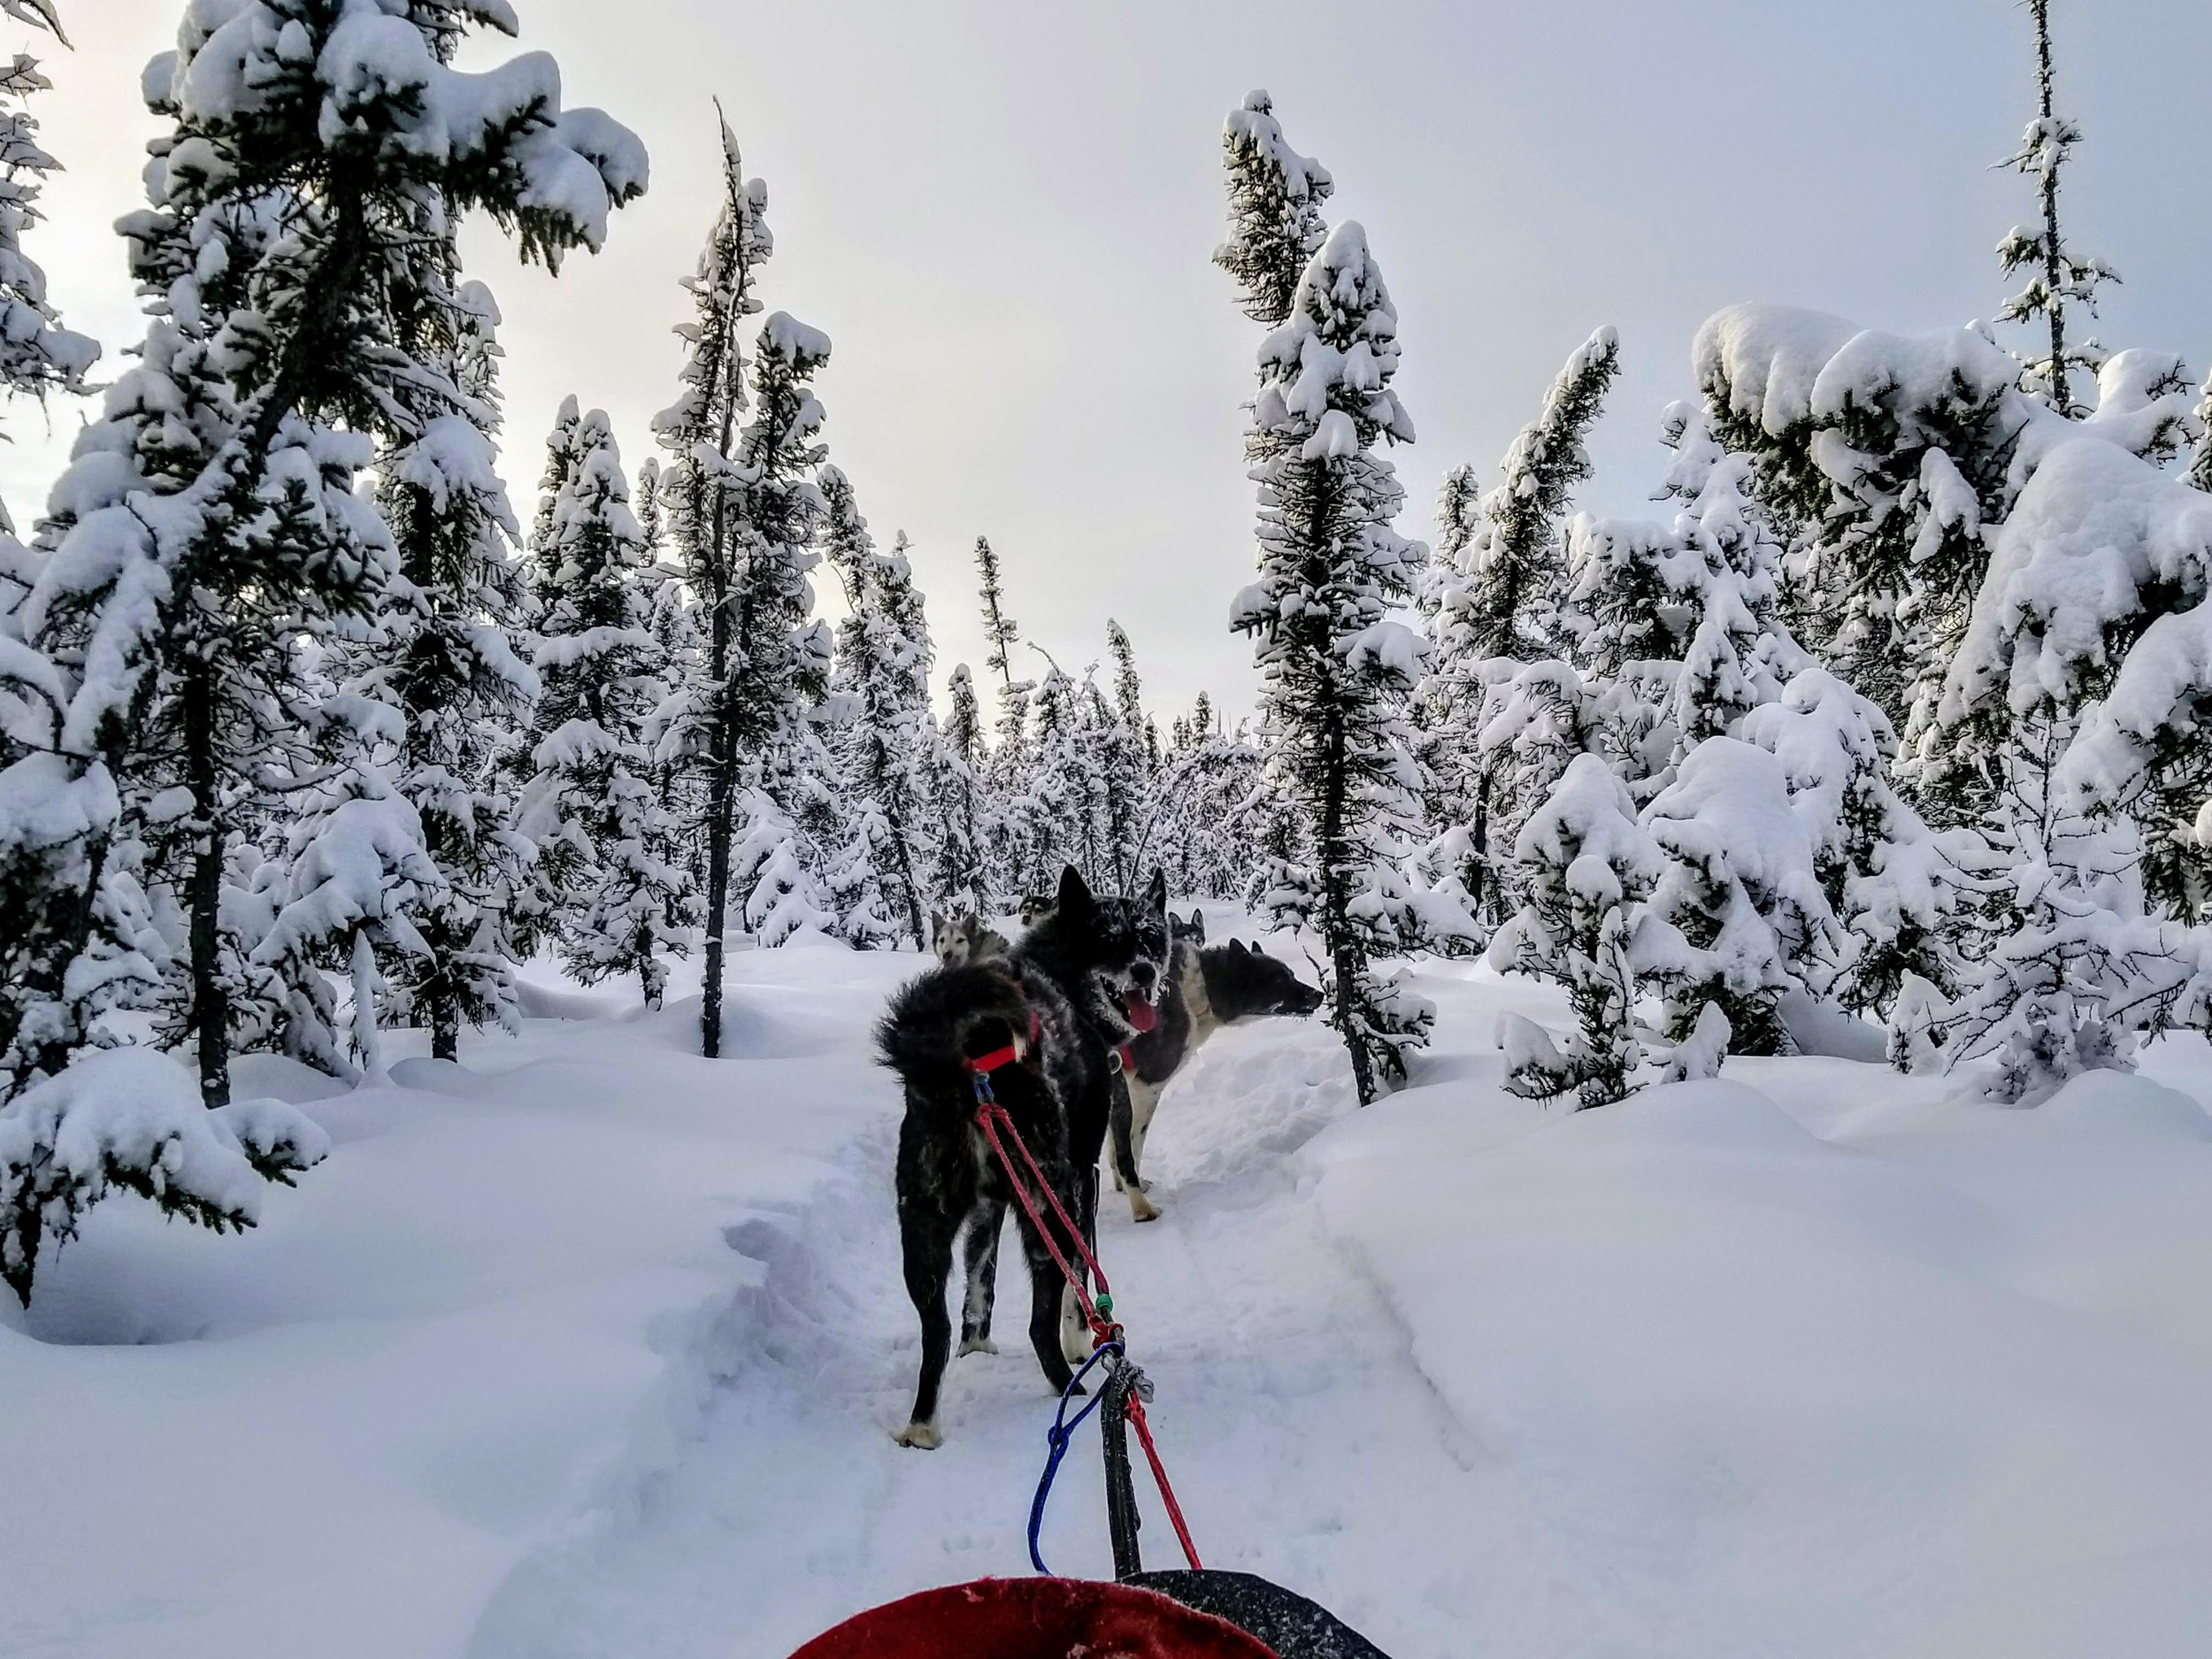 View from the sled. I think I had a smile plastered to my face the entire time.